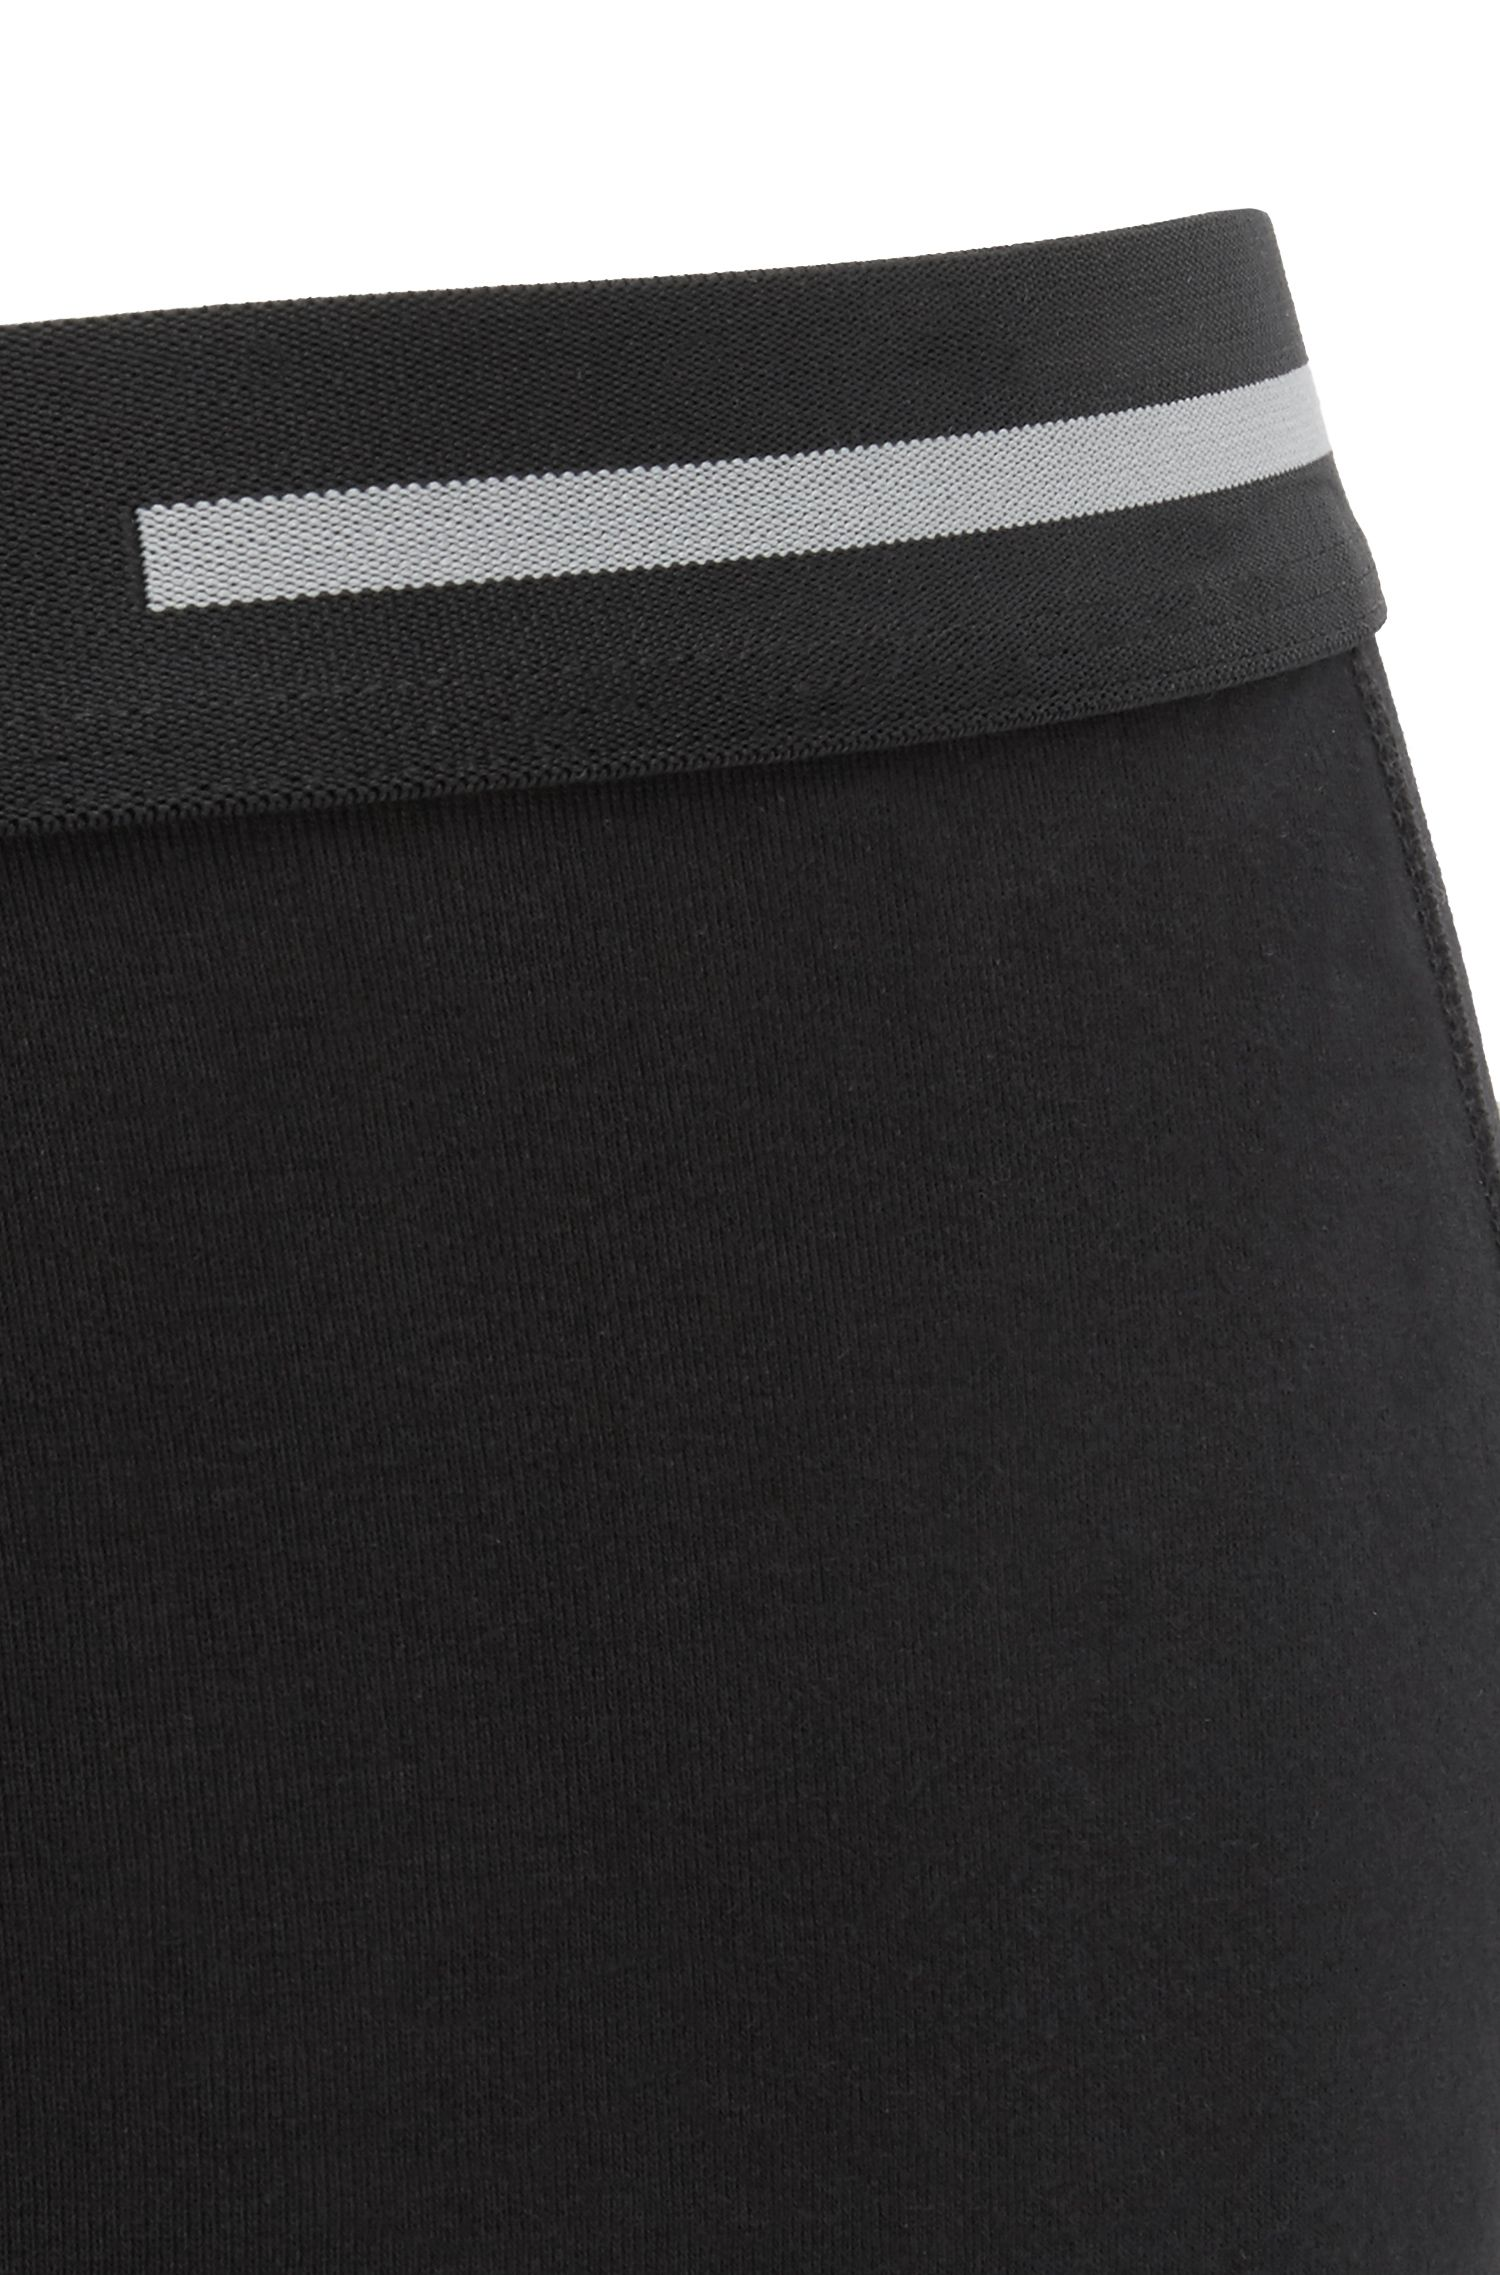 Cotton trunks with logo waistband, Black